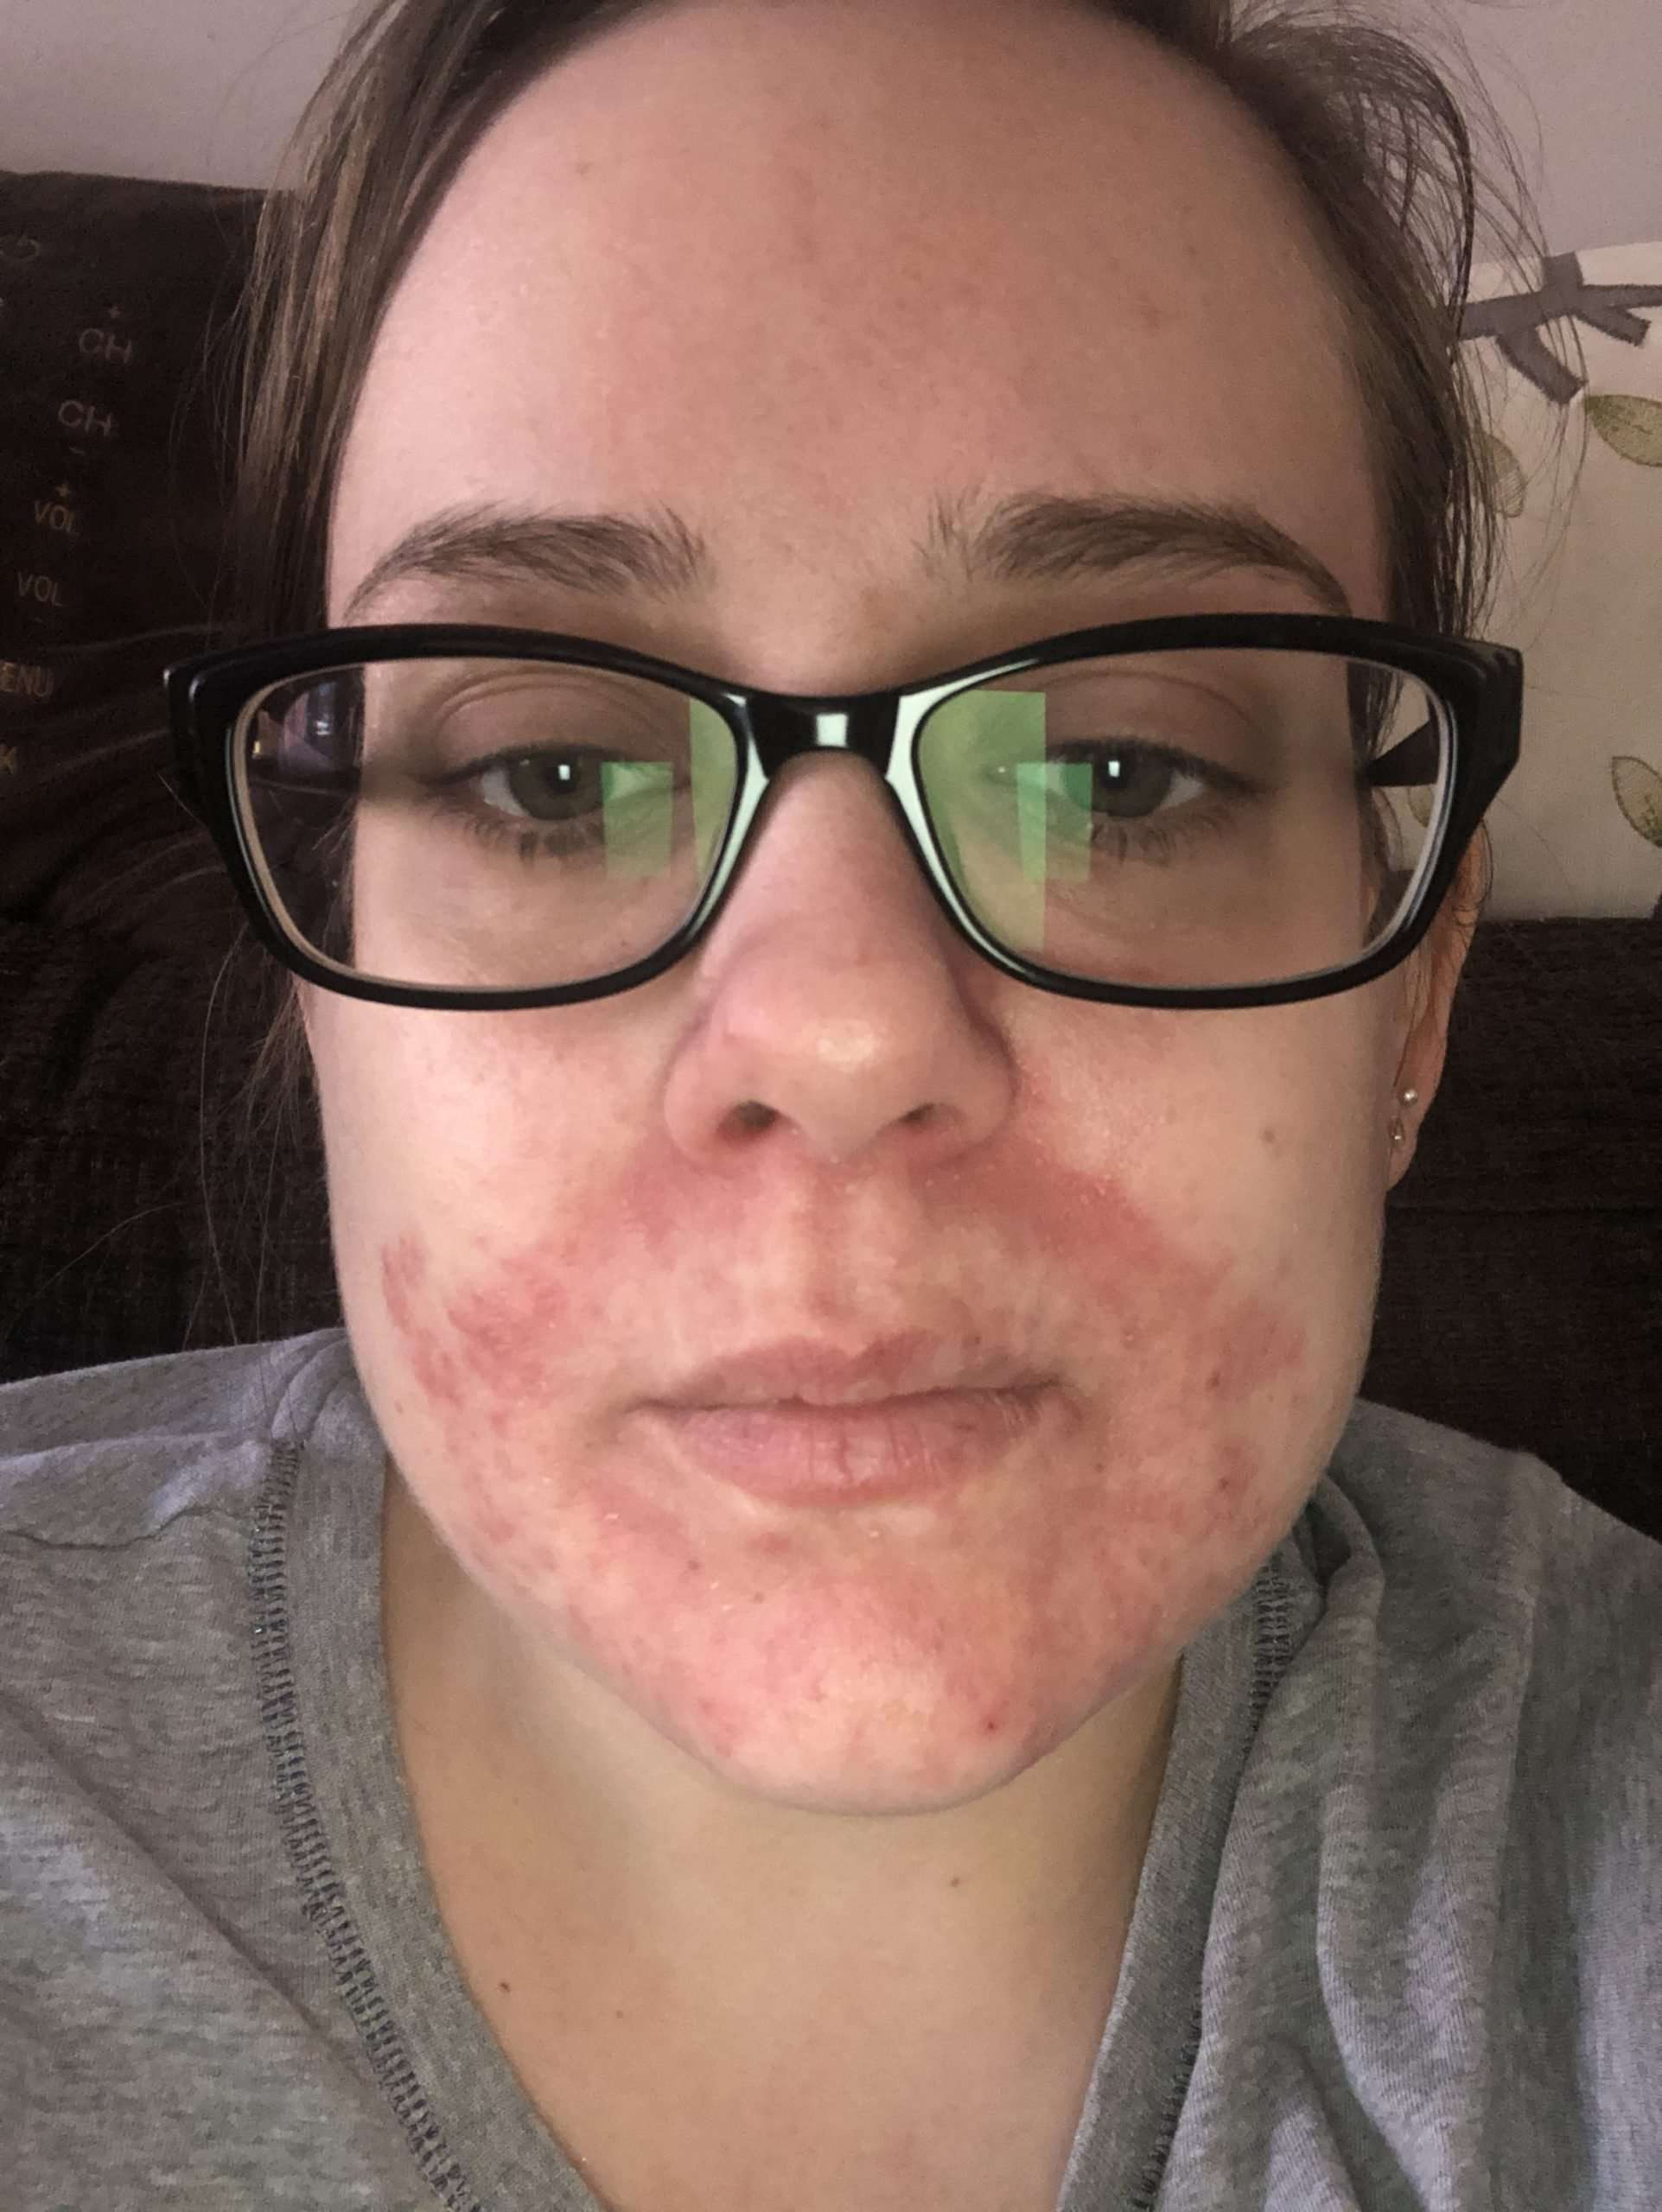 Lisa is looking at the camera. The skin around her mouth is slightly red due to Atopic Dermatitis